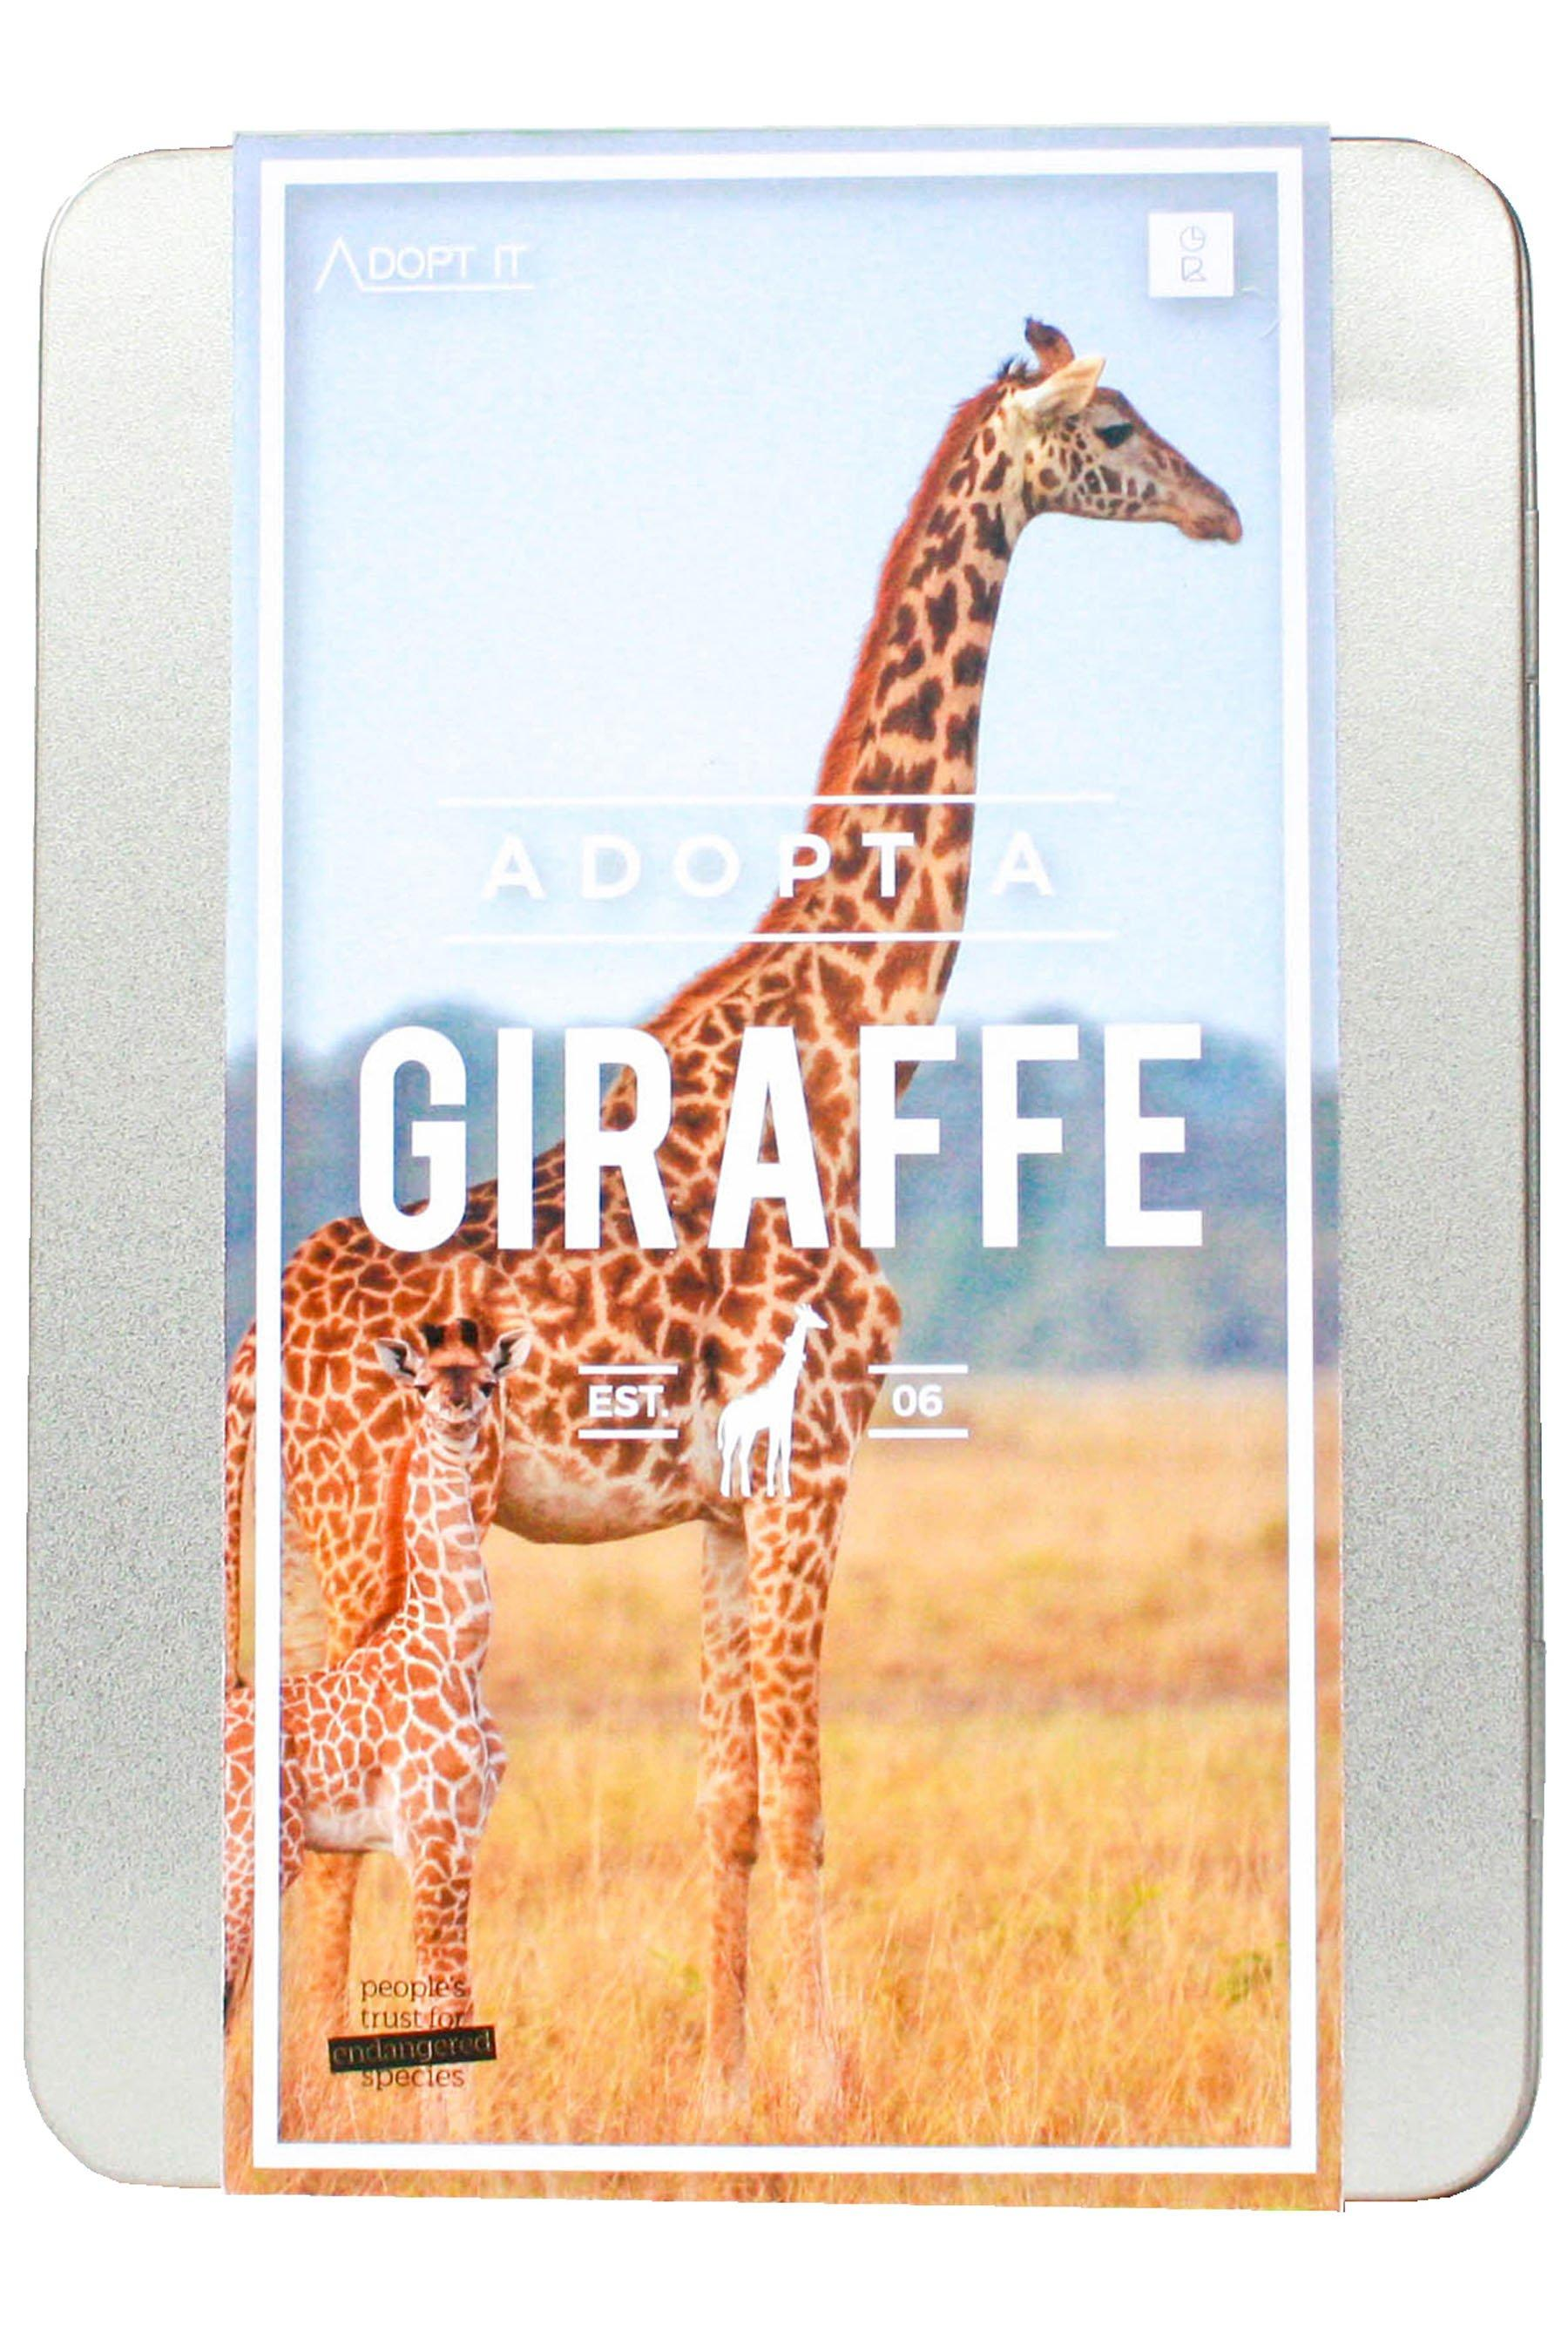 Compare retail prices of Adopt It - Adopt a Giraffe to get the best deal online